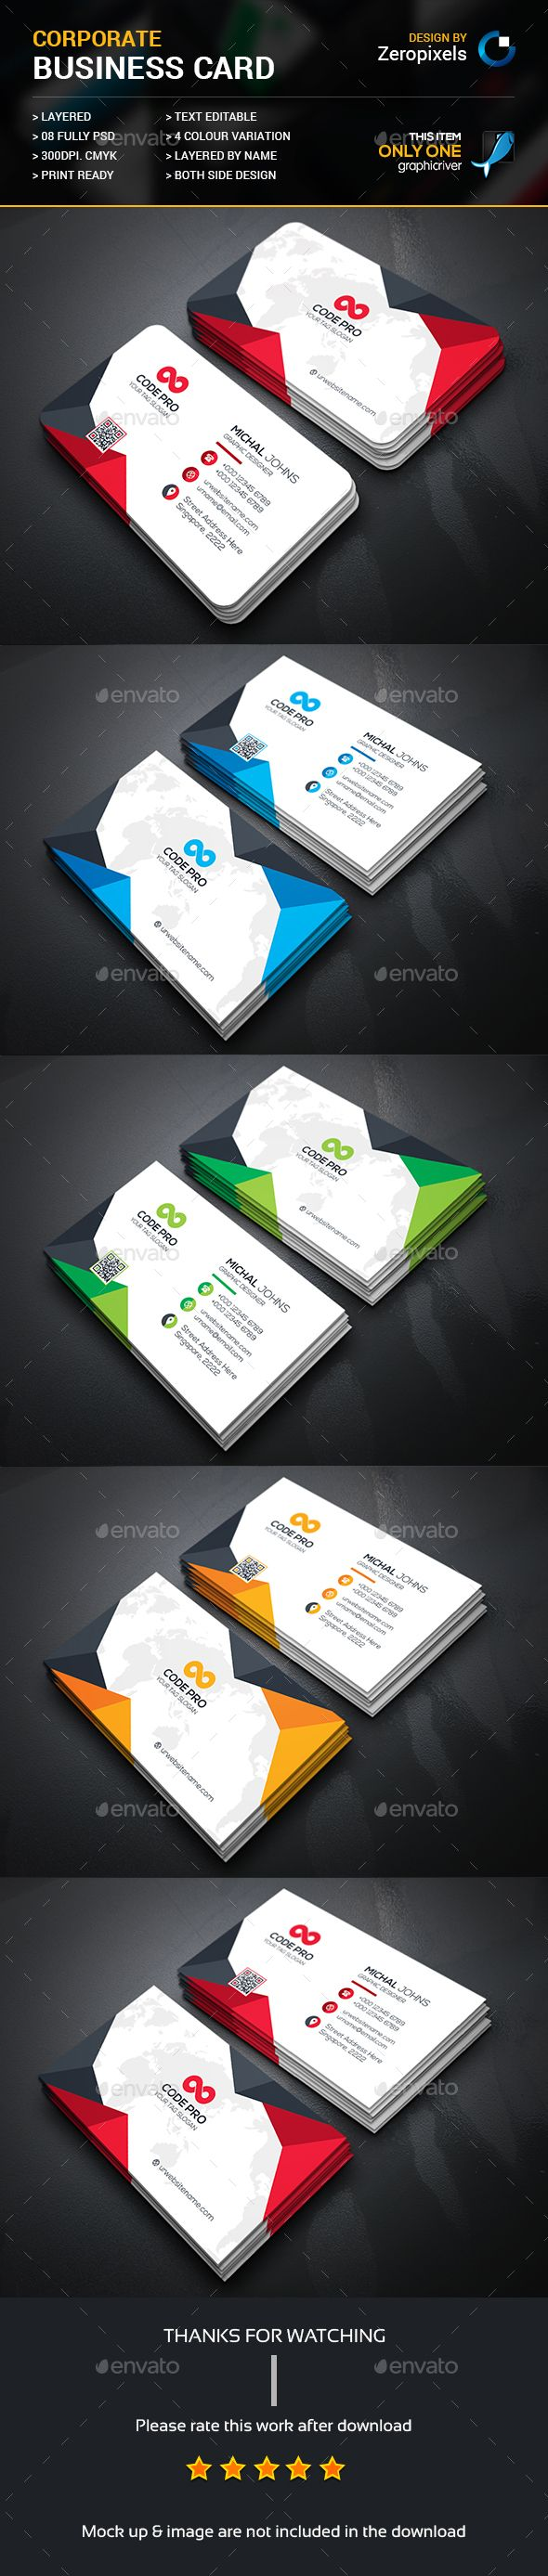 Business card photoshop psd standard logo available here business card photoshop psd standard logo available here httpsgraphicriveritembusiness card17298122refpxcr pinterest business cards reheart Gallery